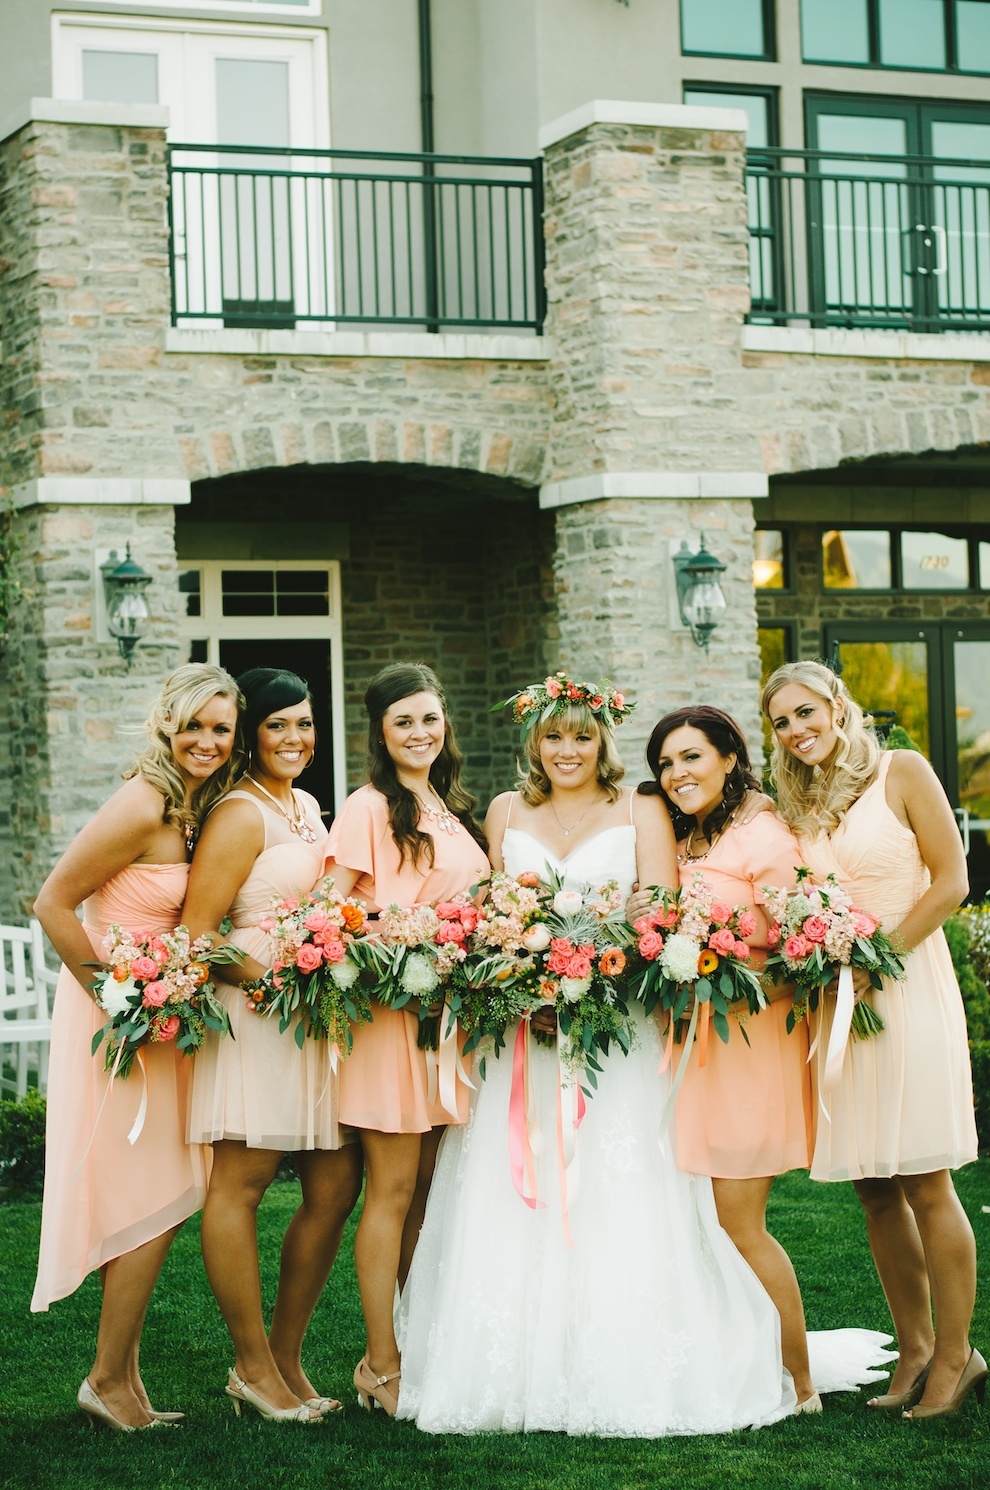 coral peach wedding flowers coral peach bridesmaids flowers coral peach wedding bouquet utah florist calie rose sleepy ridge reception center chantel marie photography